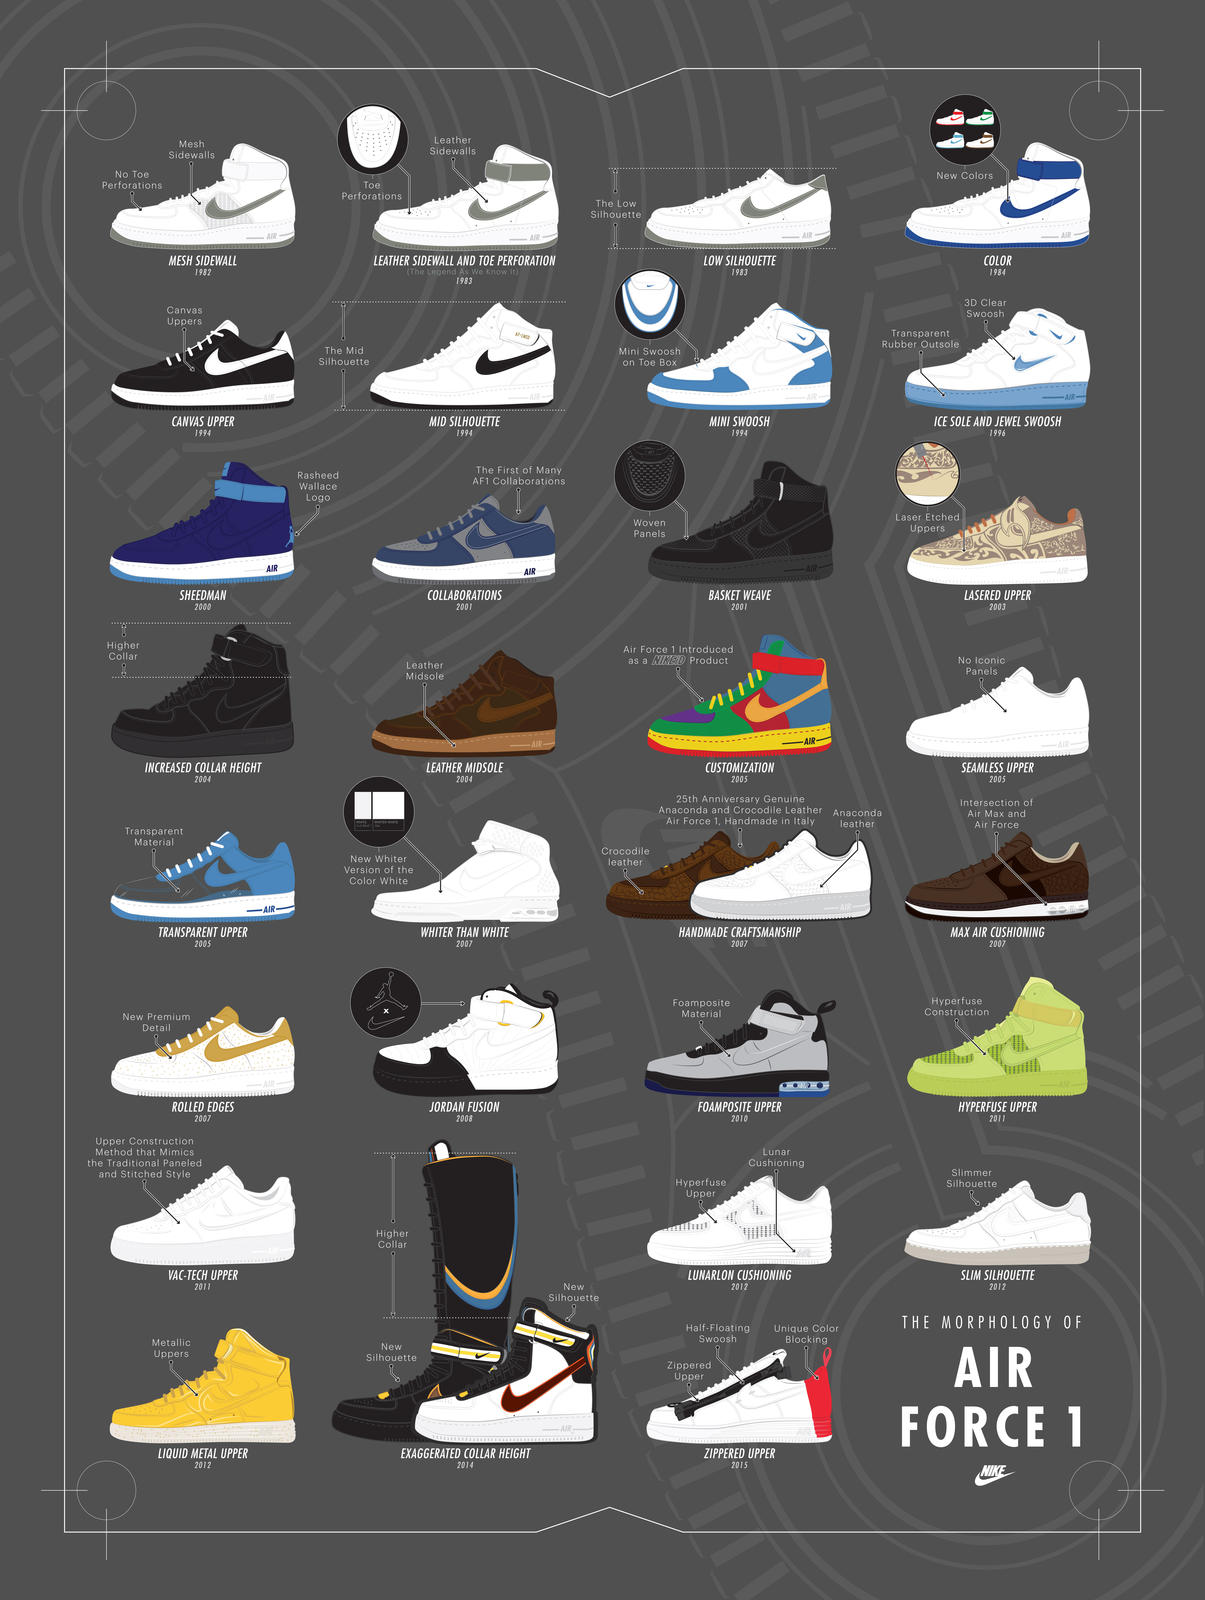 Nike Air Force 1 History Infographic